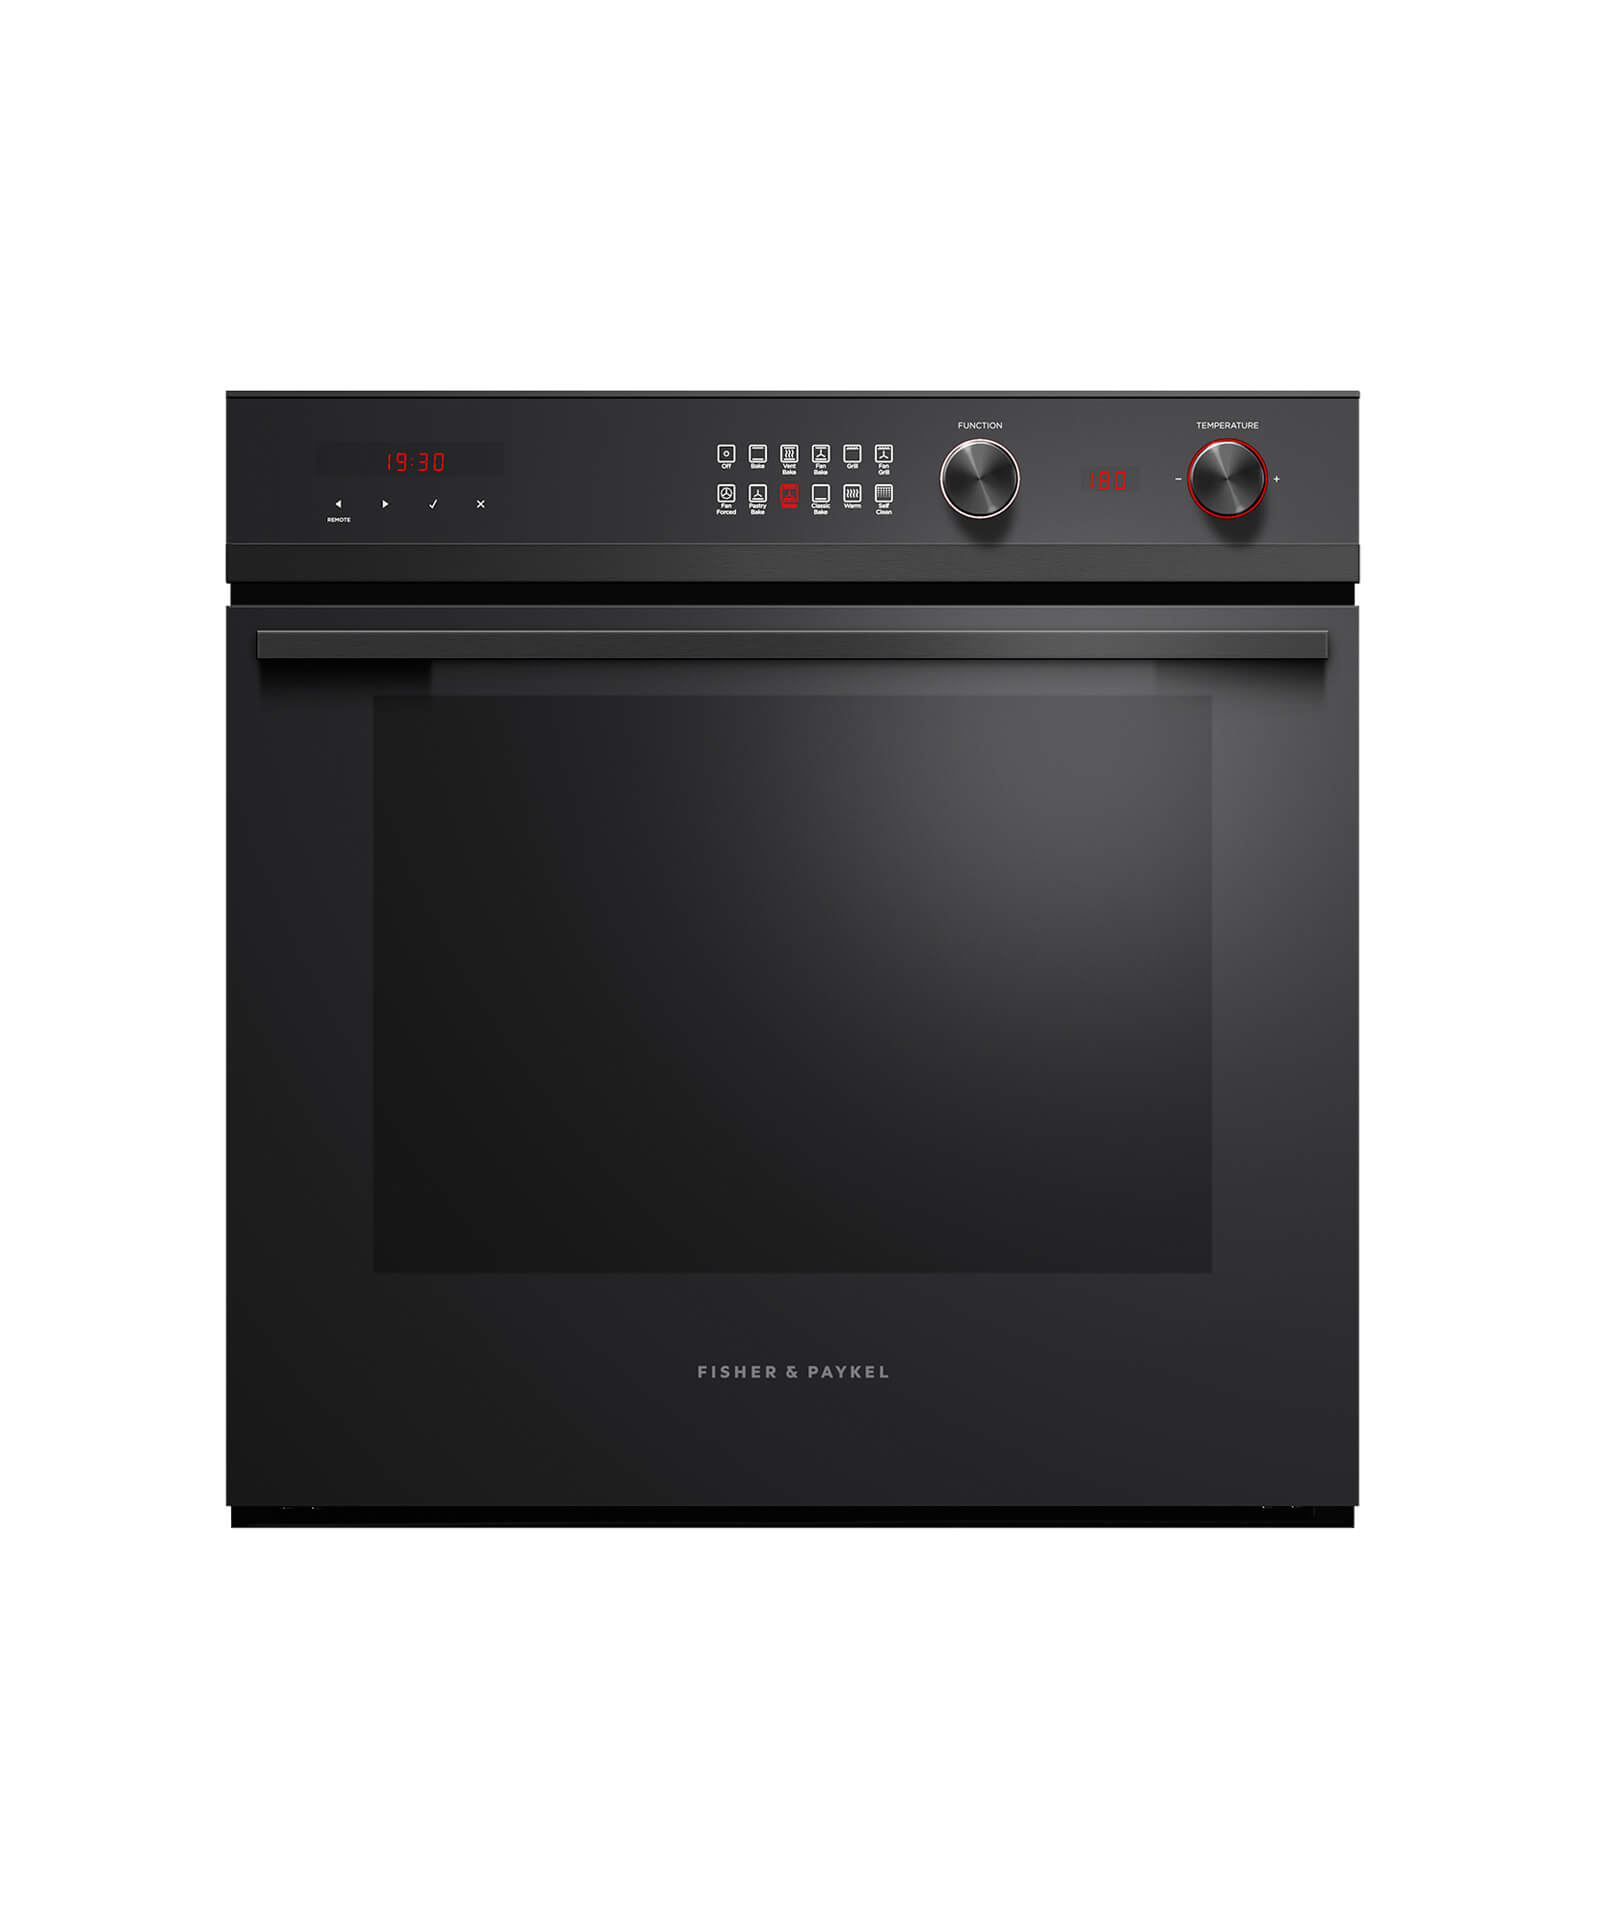 OB60SD11PB1 - 60cm 11 Function Built-in Oven - 85L Pyrolytic - 81751